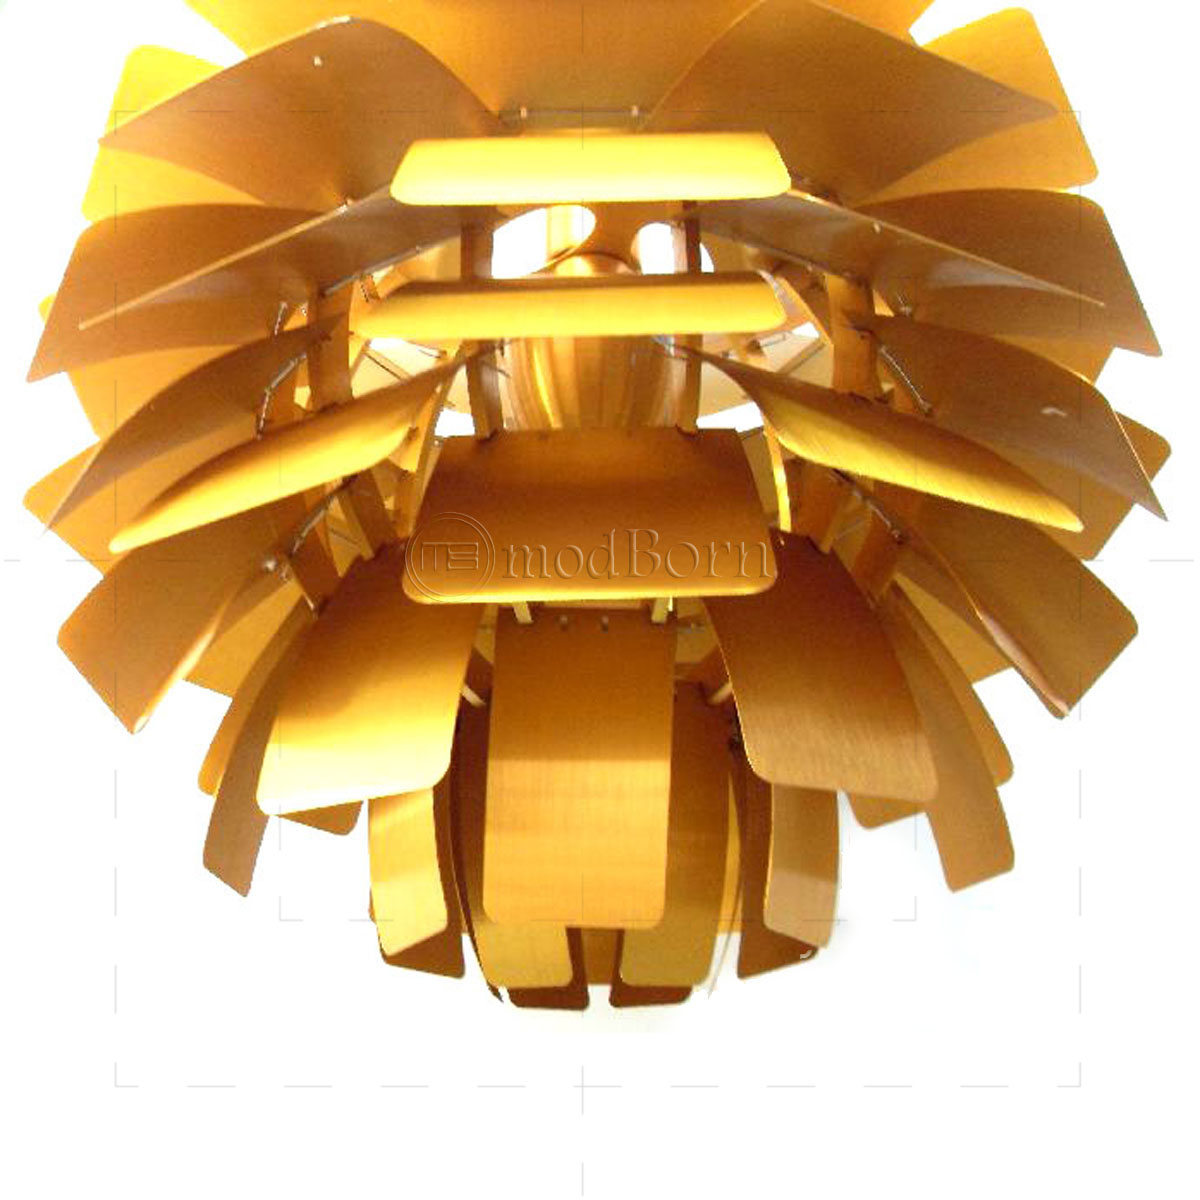 poul henningsen style artichoke lamp gold replica. Black Bedroom Furniture Sets. Home Design Ideas